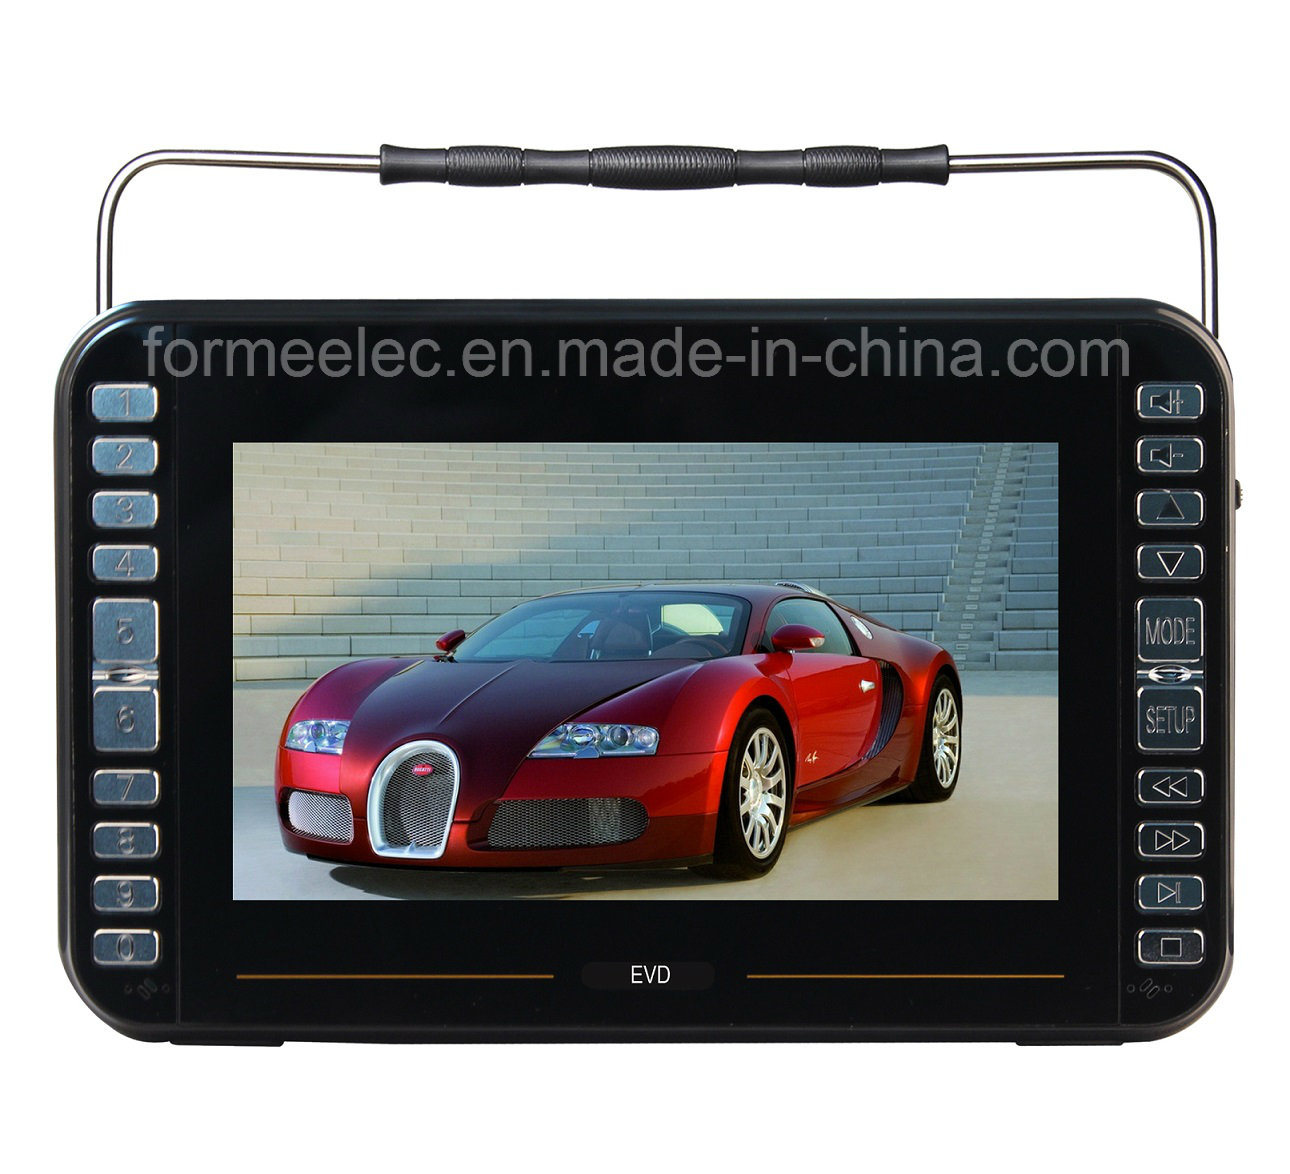 10.1 Inch MP3 MP4 MP5 Portable DVD Player with ISDB-TV